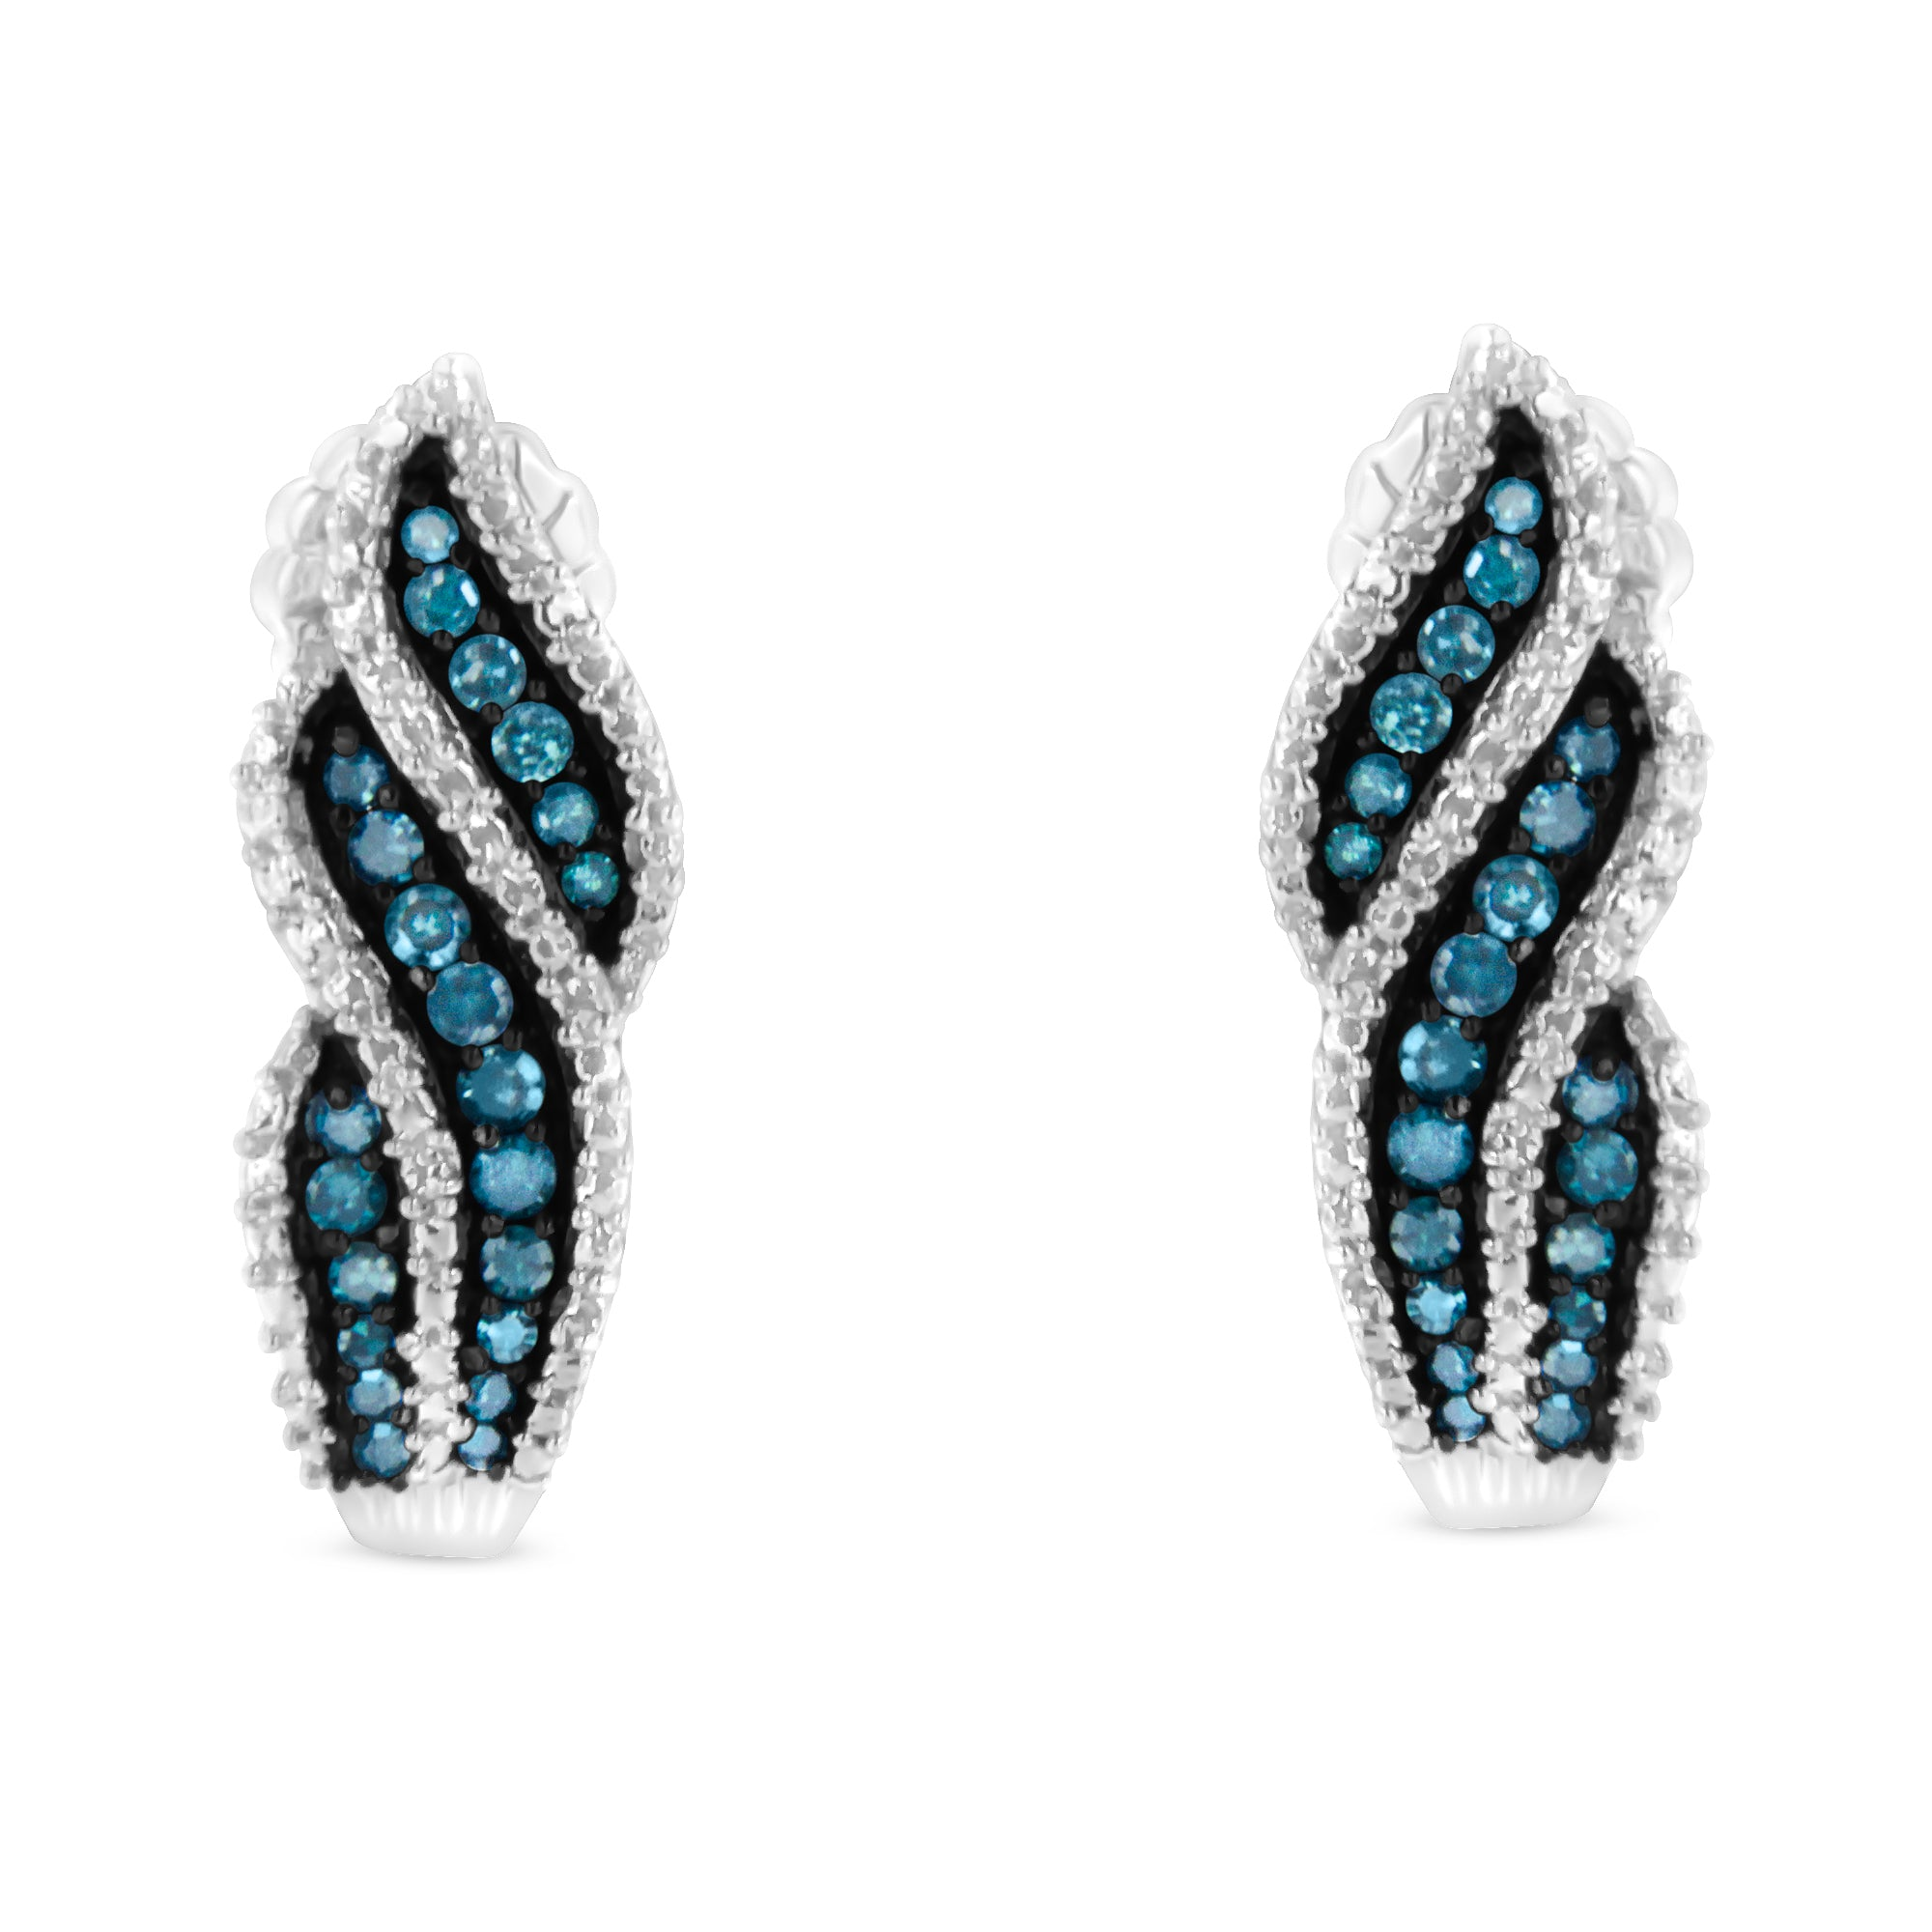 Treated Blue Diamond Dangling Stud Earrings